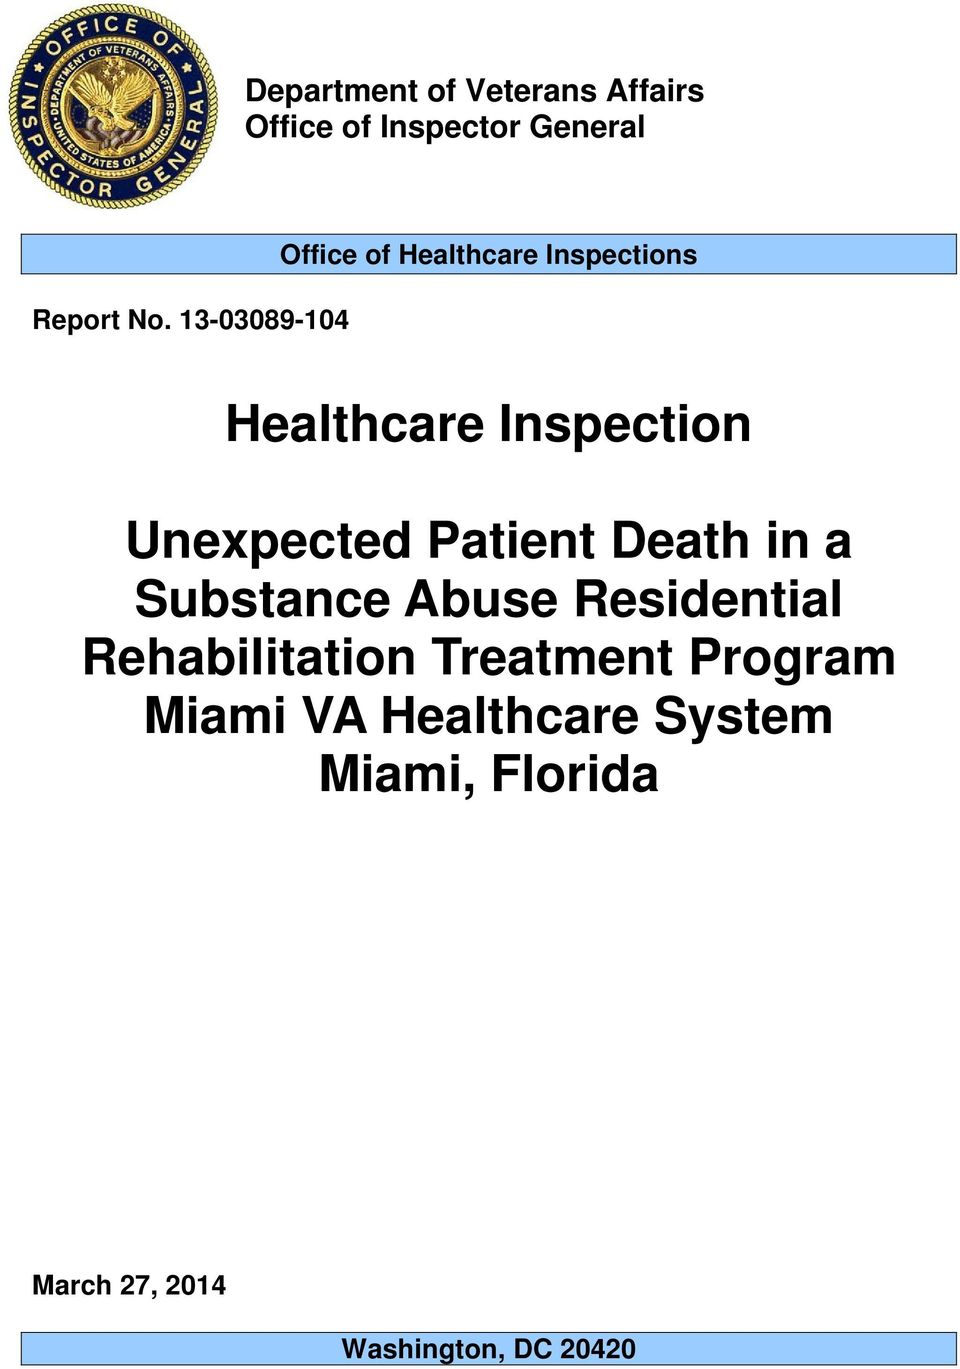 Unexpected Patient Death in a Substance Abuse Residential Rehabilitation